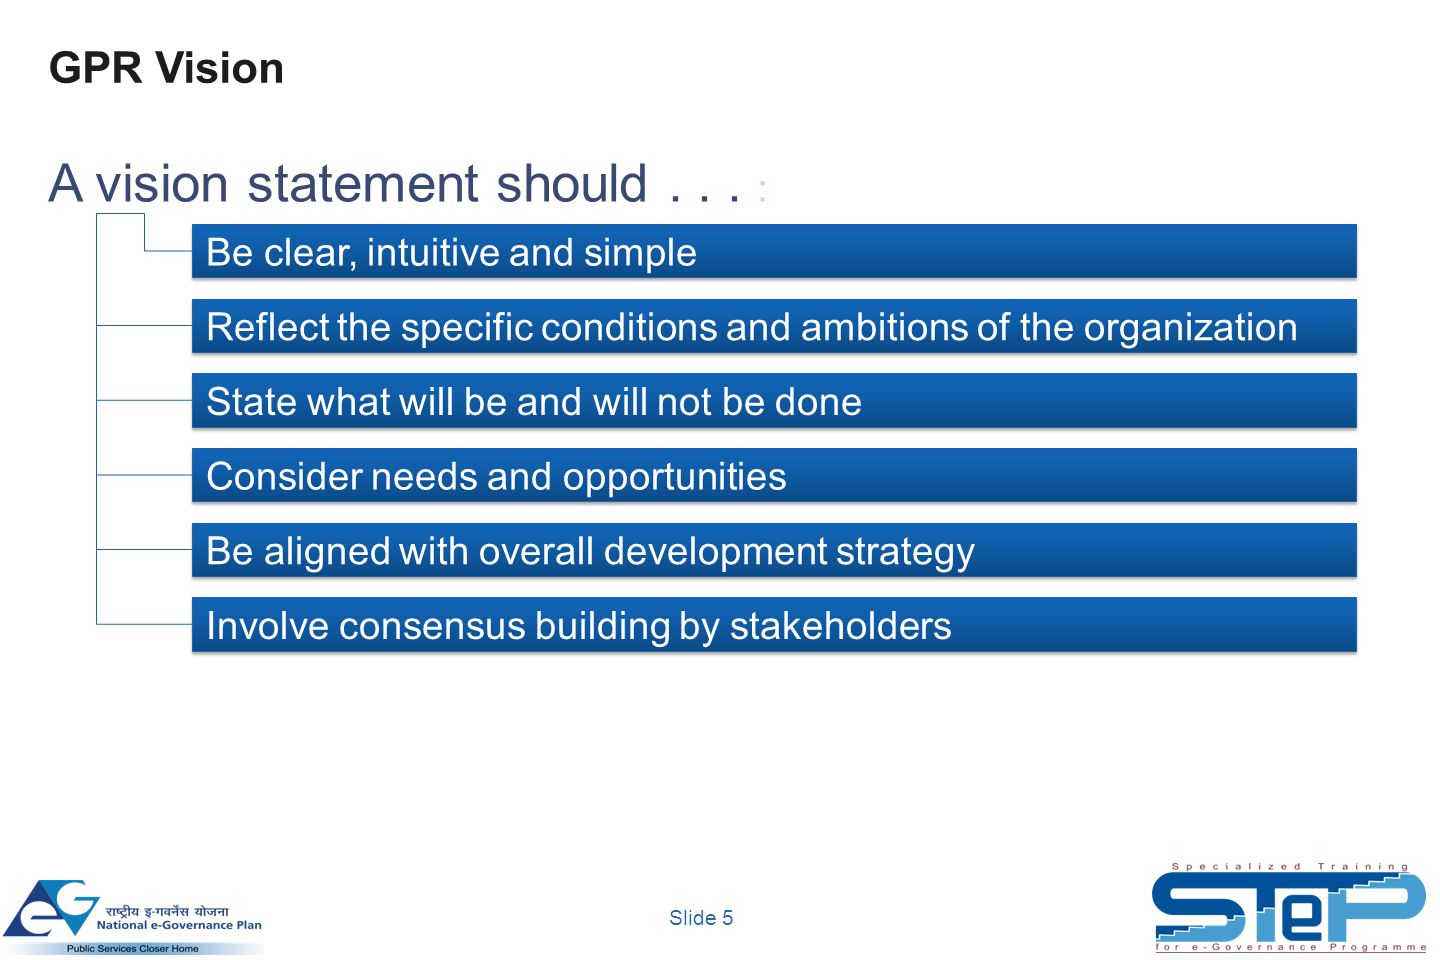 Slide 5 GPR Vision Be clear, intuitive and simple Reflect the specific conditions and ambitions of the organization State what will be and will not be done Consider needs and opportunities Be aligned with overall development strategy Involve consensus building by stakeholders A vision statement should...